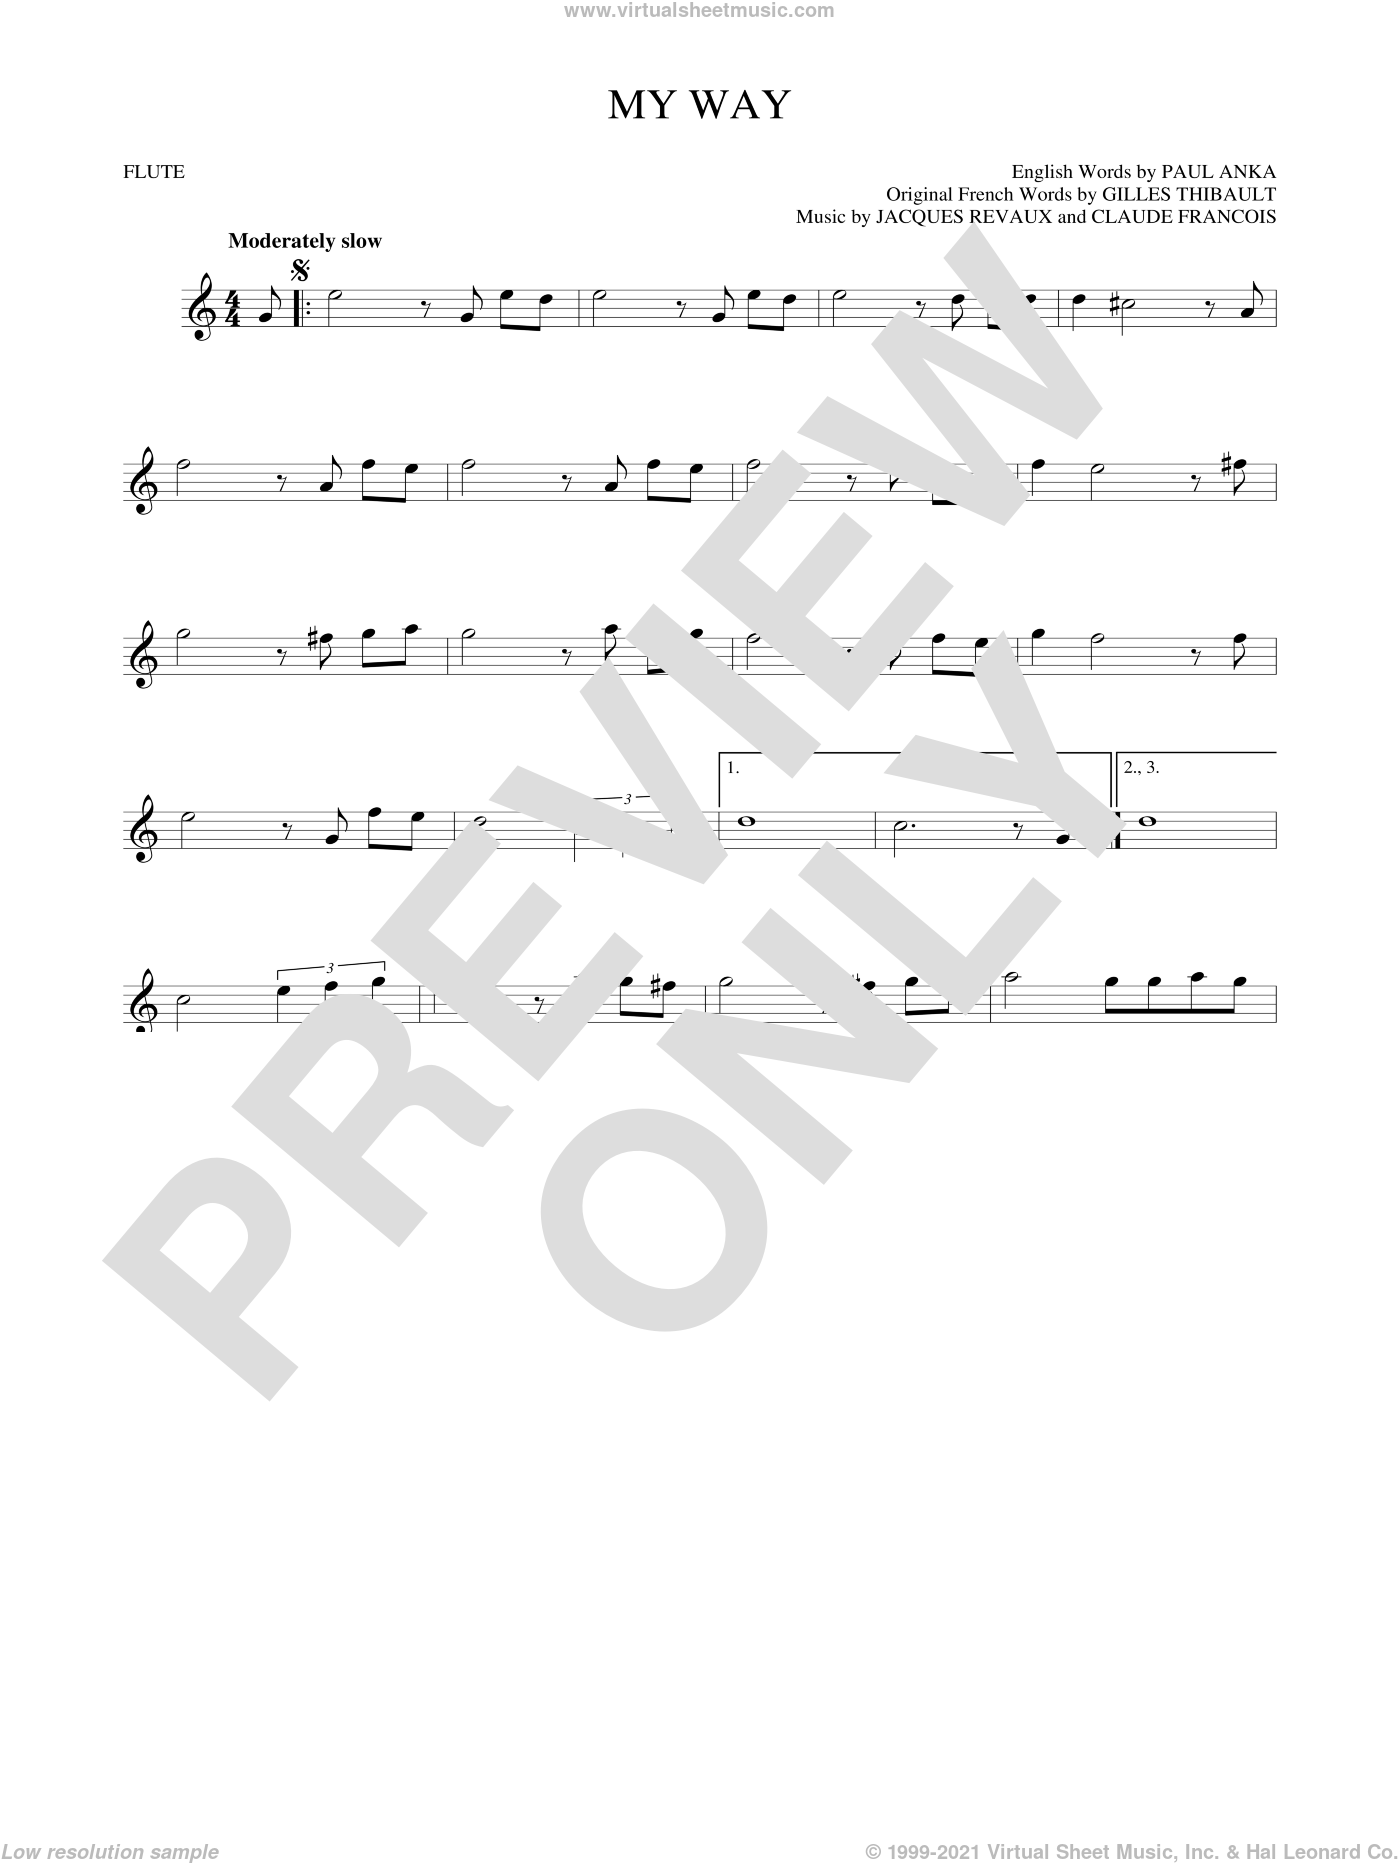 My Way sheet music for flute solo by Frank Sinatra, Elvis Presley, Claude Francois, Gilles Thibault, Jacques Revaux and Paul Anka, intermediate skill level